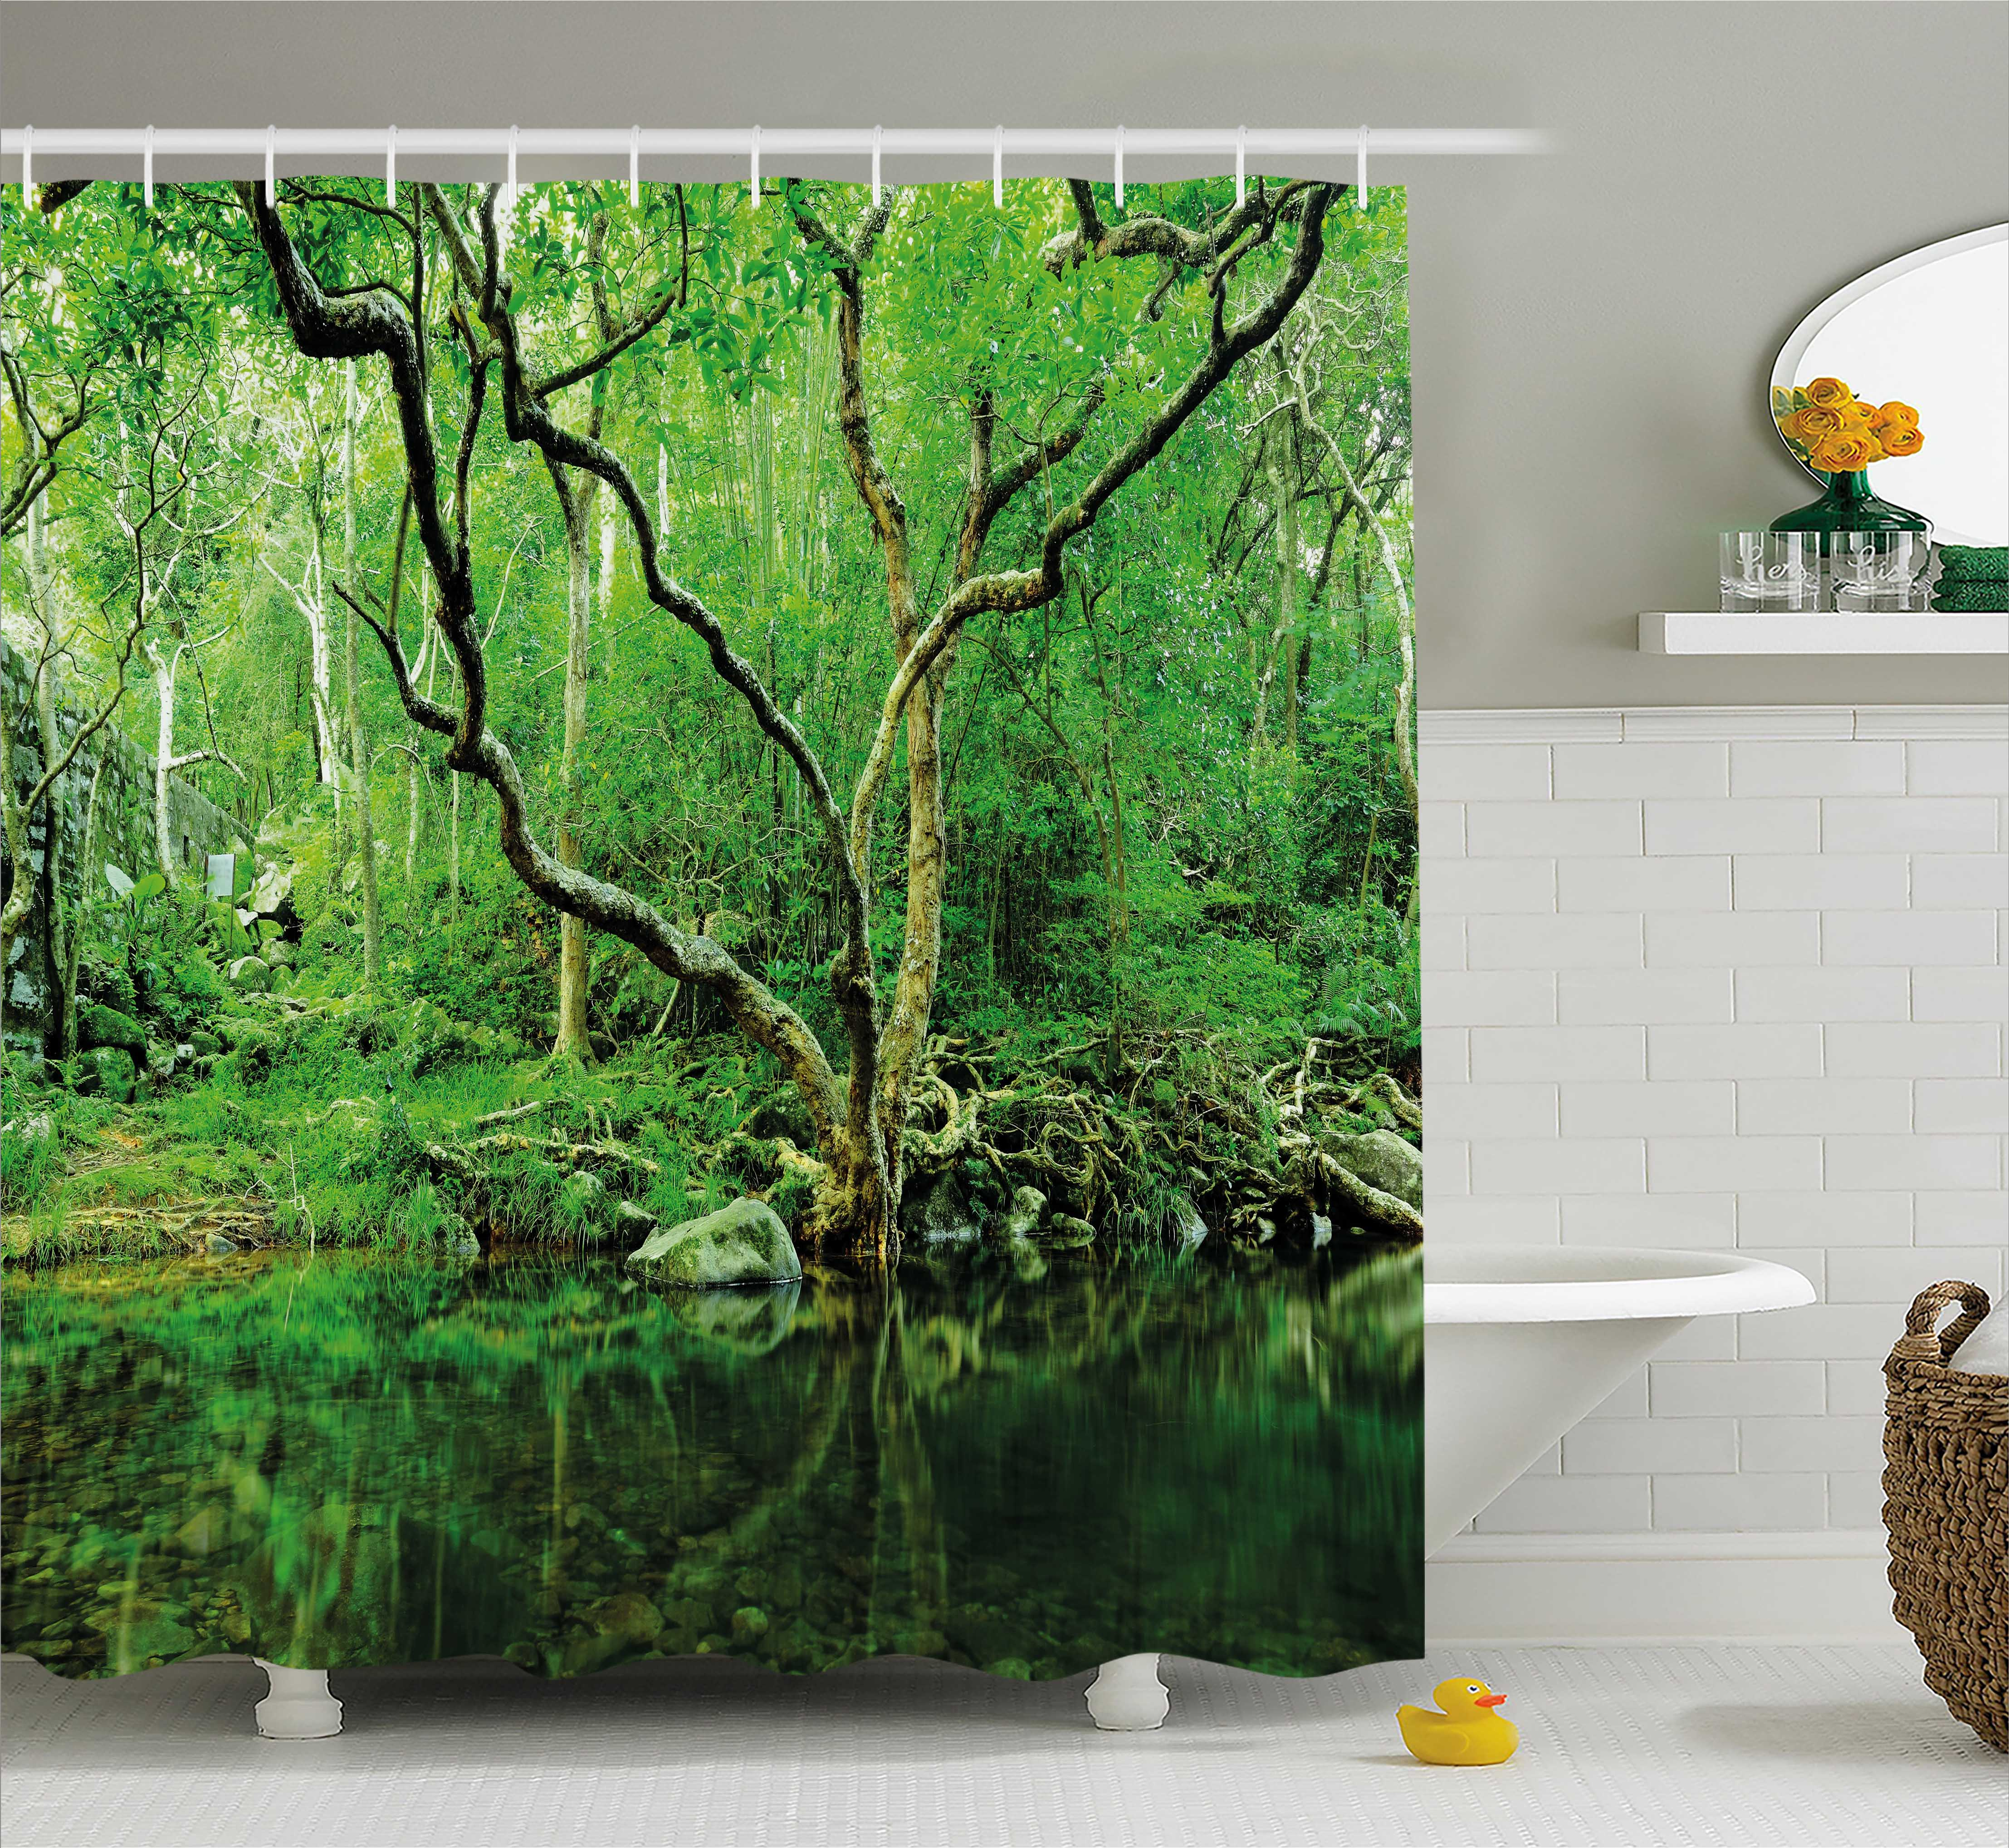 Green Shower Curtain Forest Moss Leaves Nature Themed Isolated Jungle Image Photo Print Fabric Bathroom Set With Hooks Dark Brown And